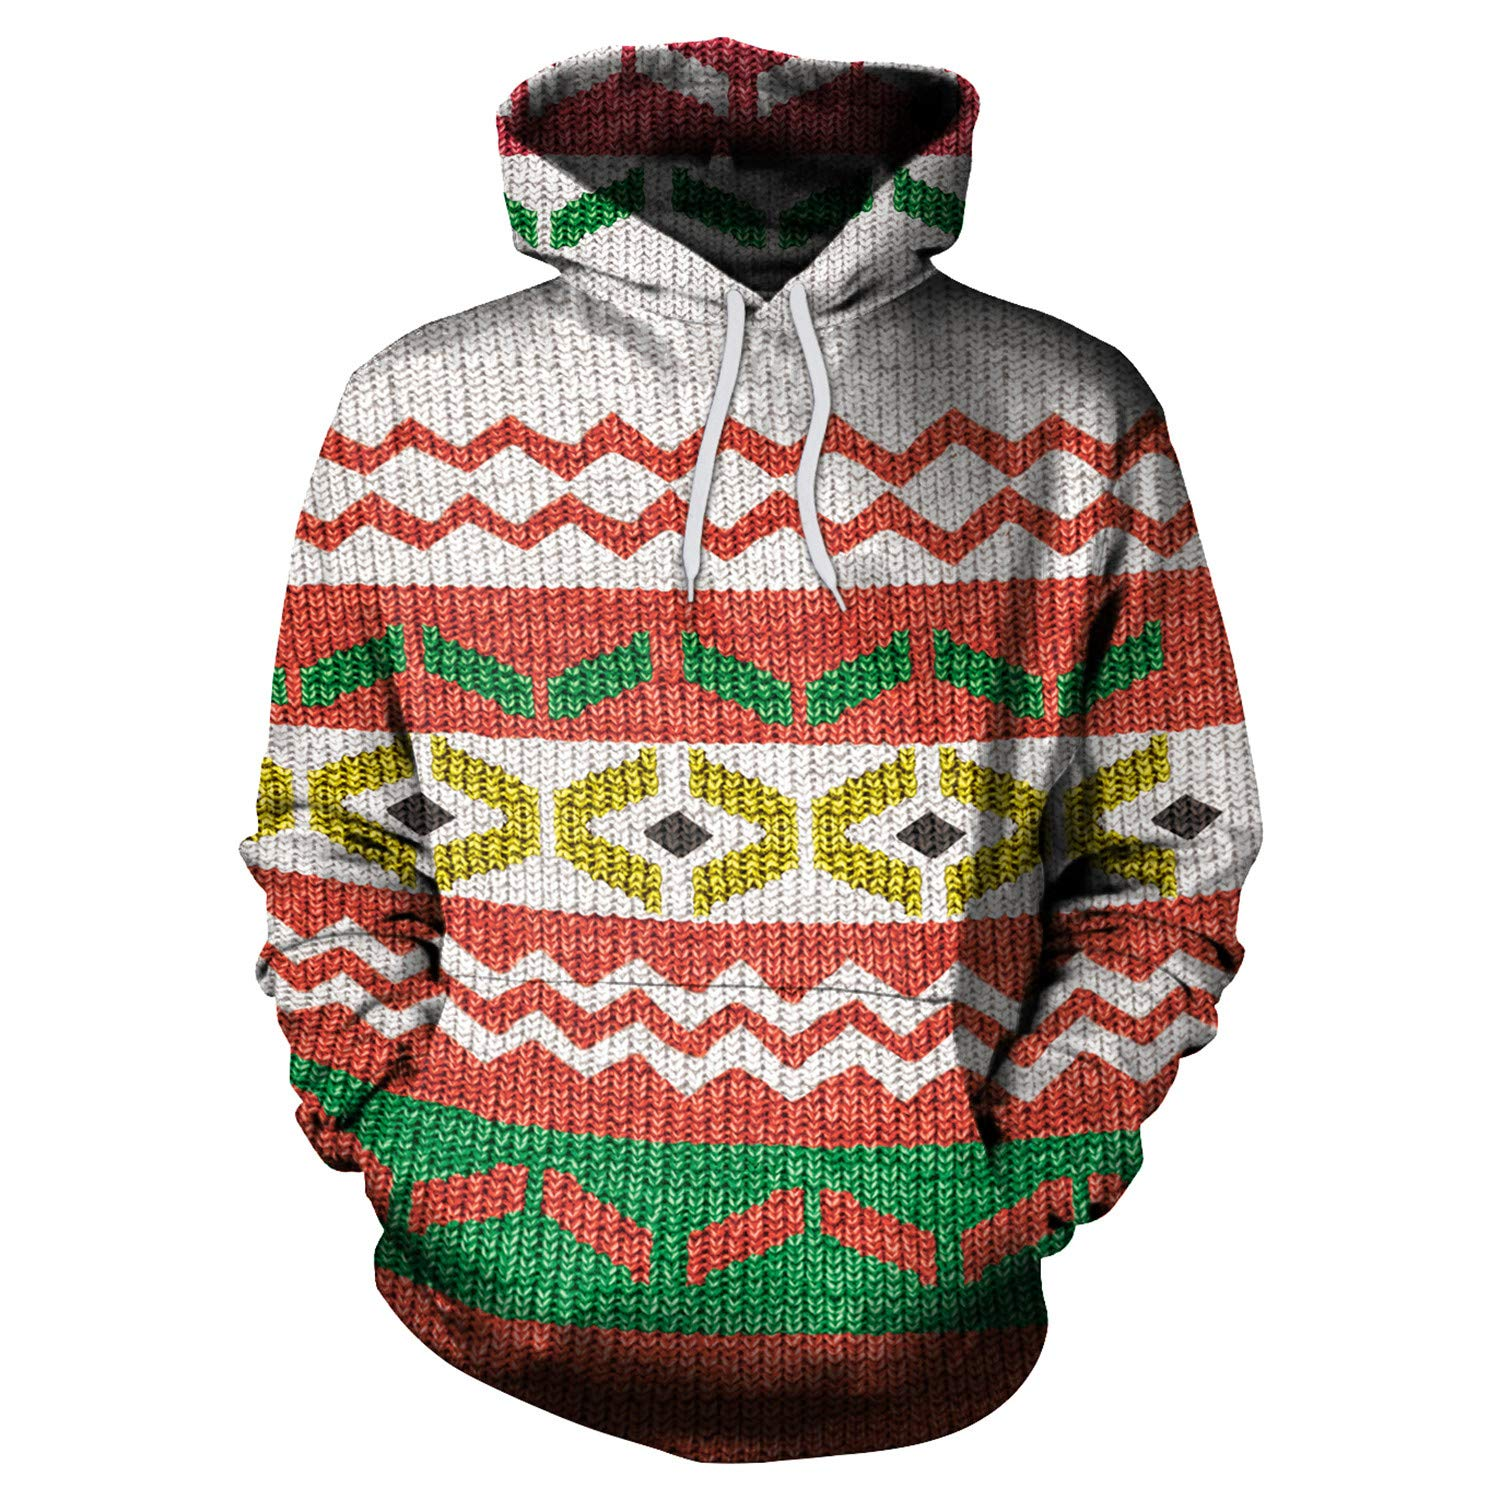 Mrsrui 3D Graphic Printed Hoodies for Men,Women, Teen Unisex Pullover Hooded Shirts by Mrsrui